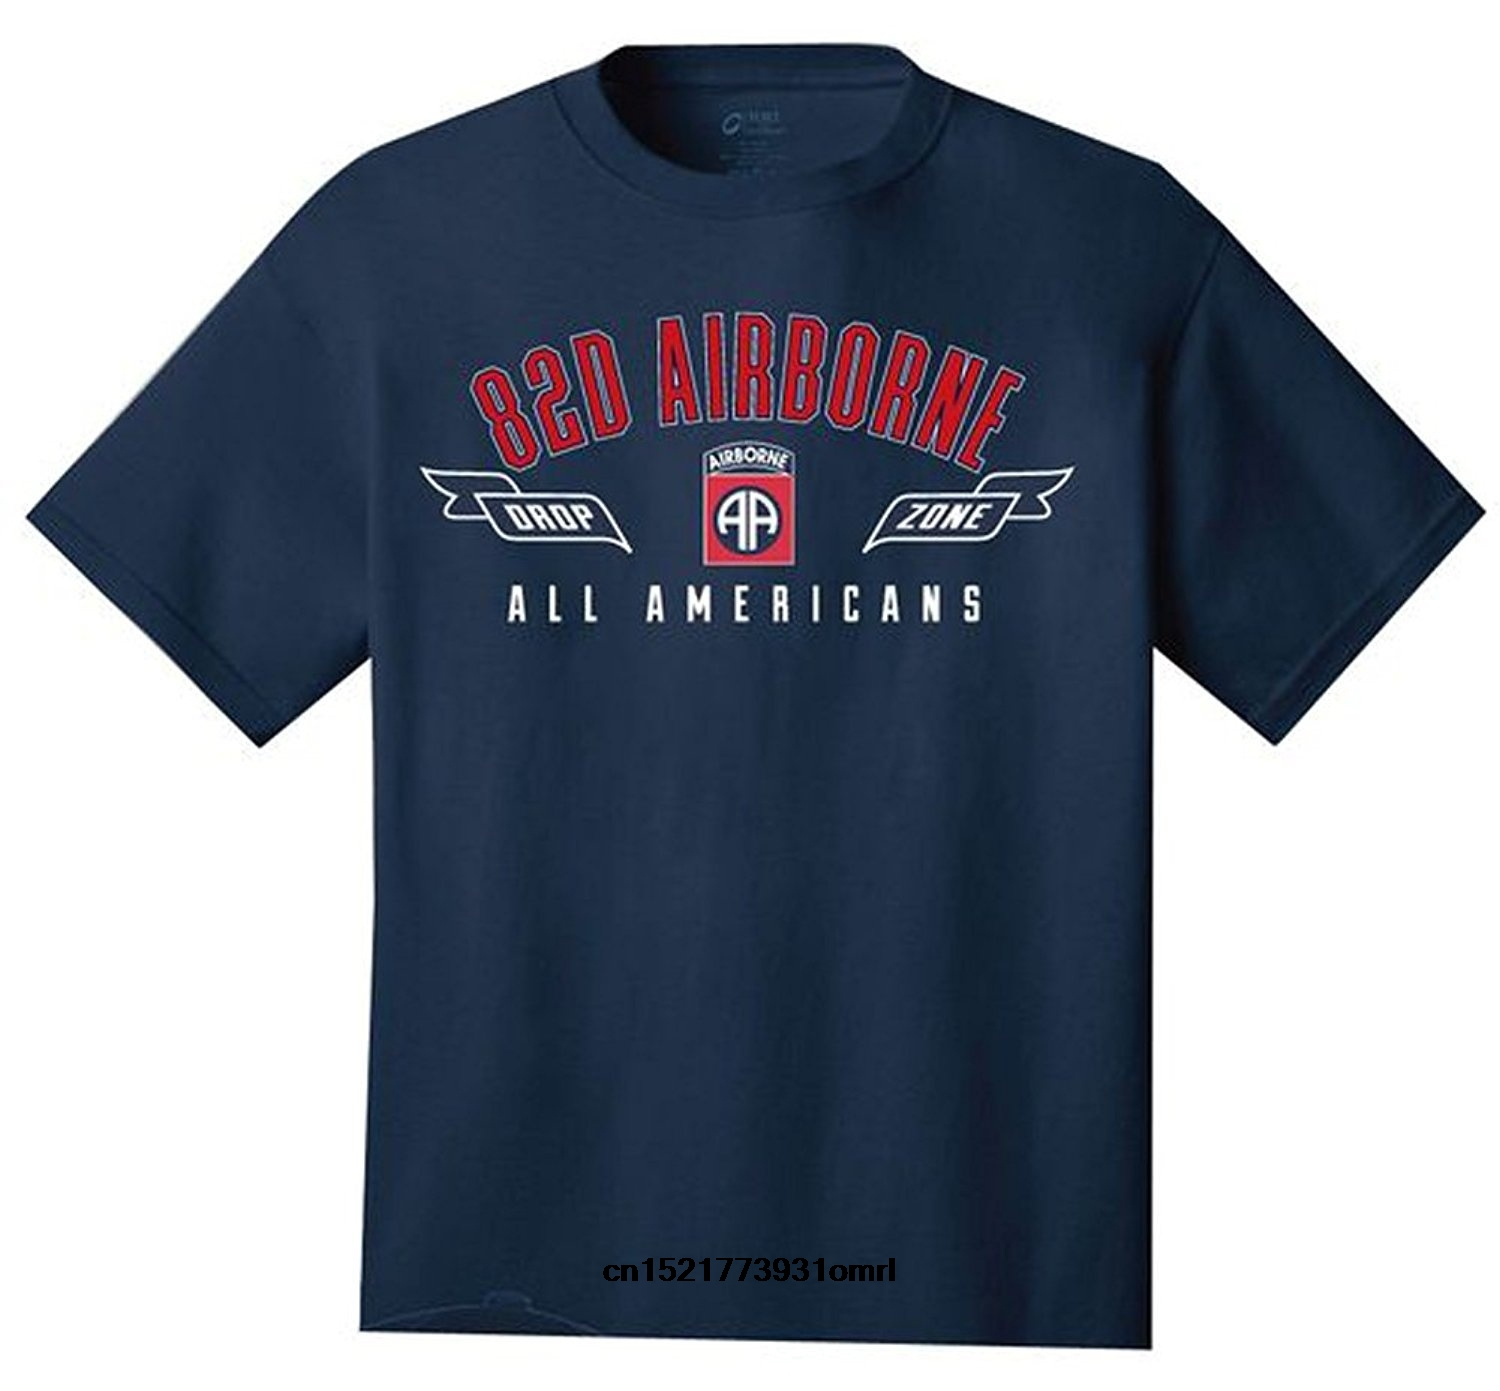 d9246178 Men T shirt U.S. Army 82nd Airborne Drop Zone All Americans Tshirt. Navy  Blue funny